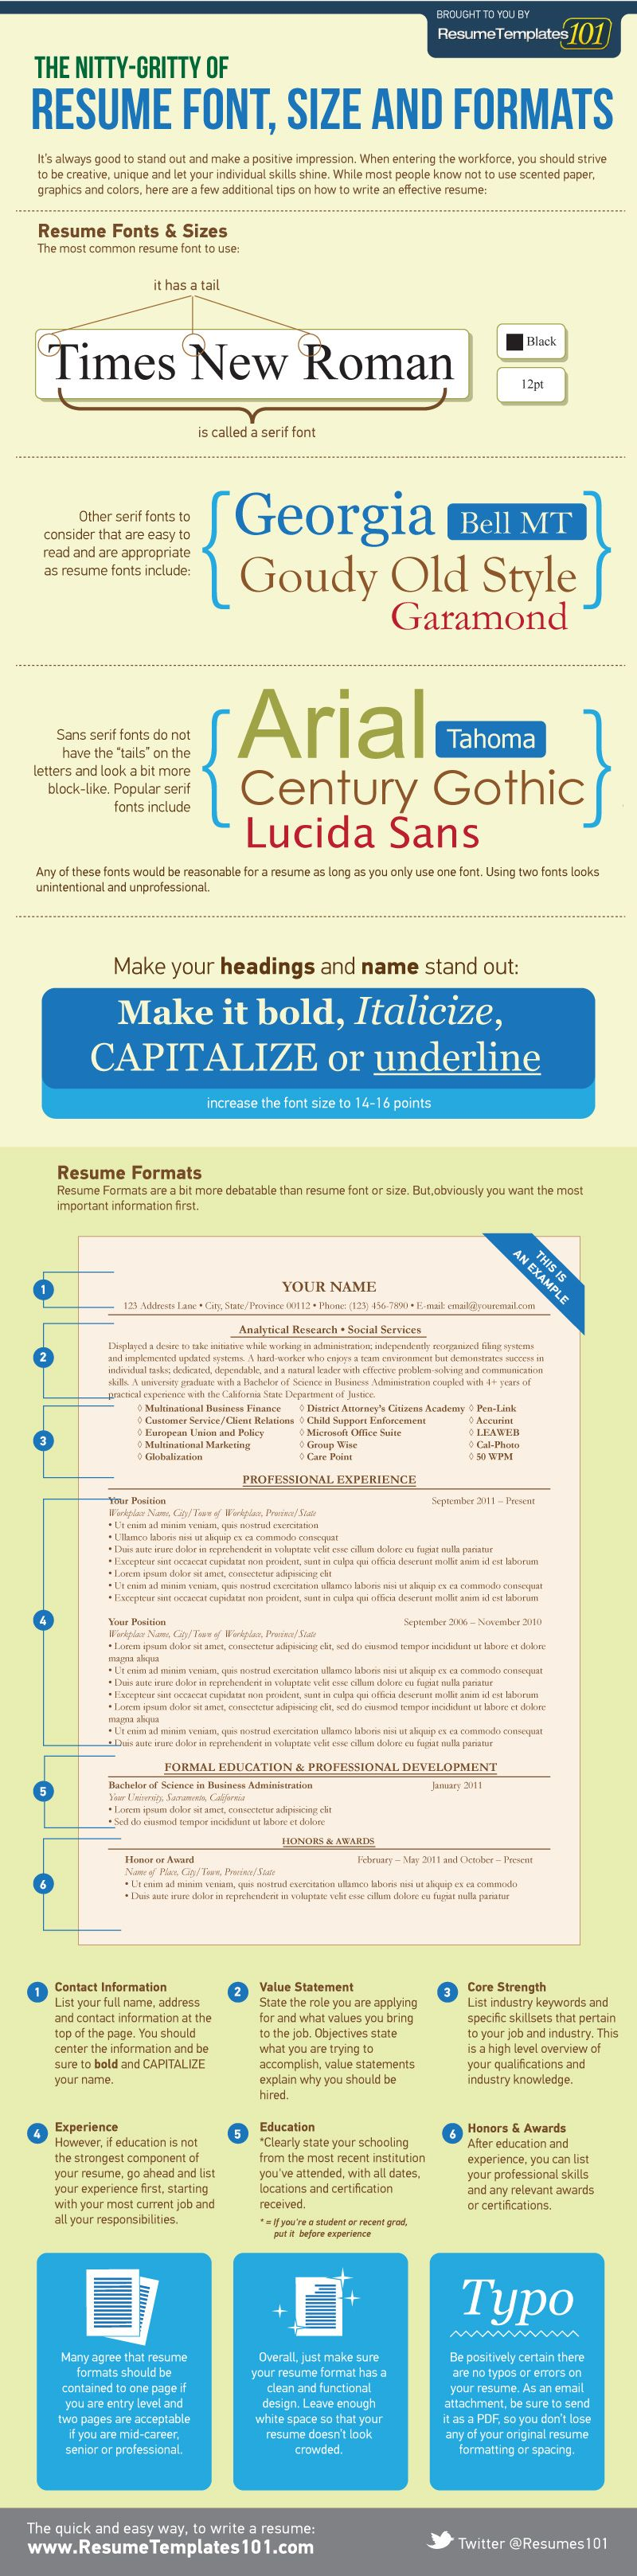 Best resume font size and format. | Work It~ | Pinterest ...